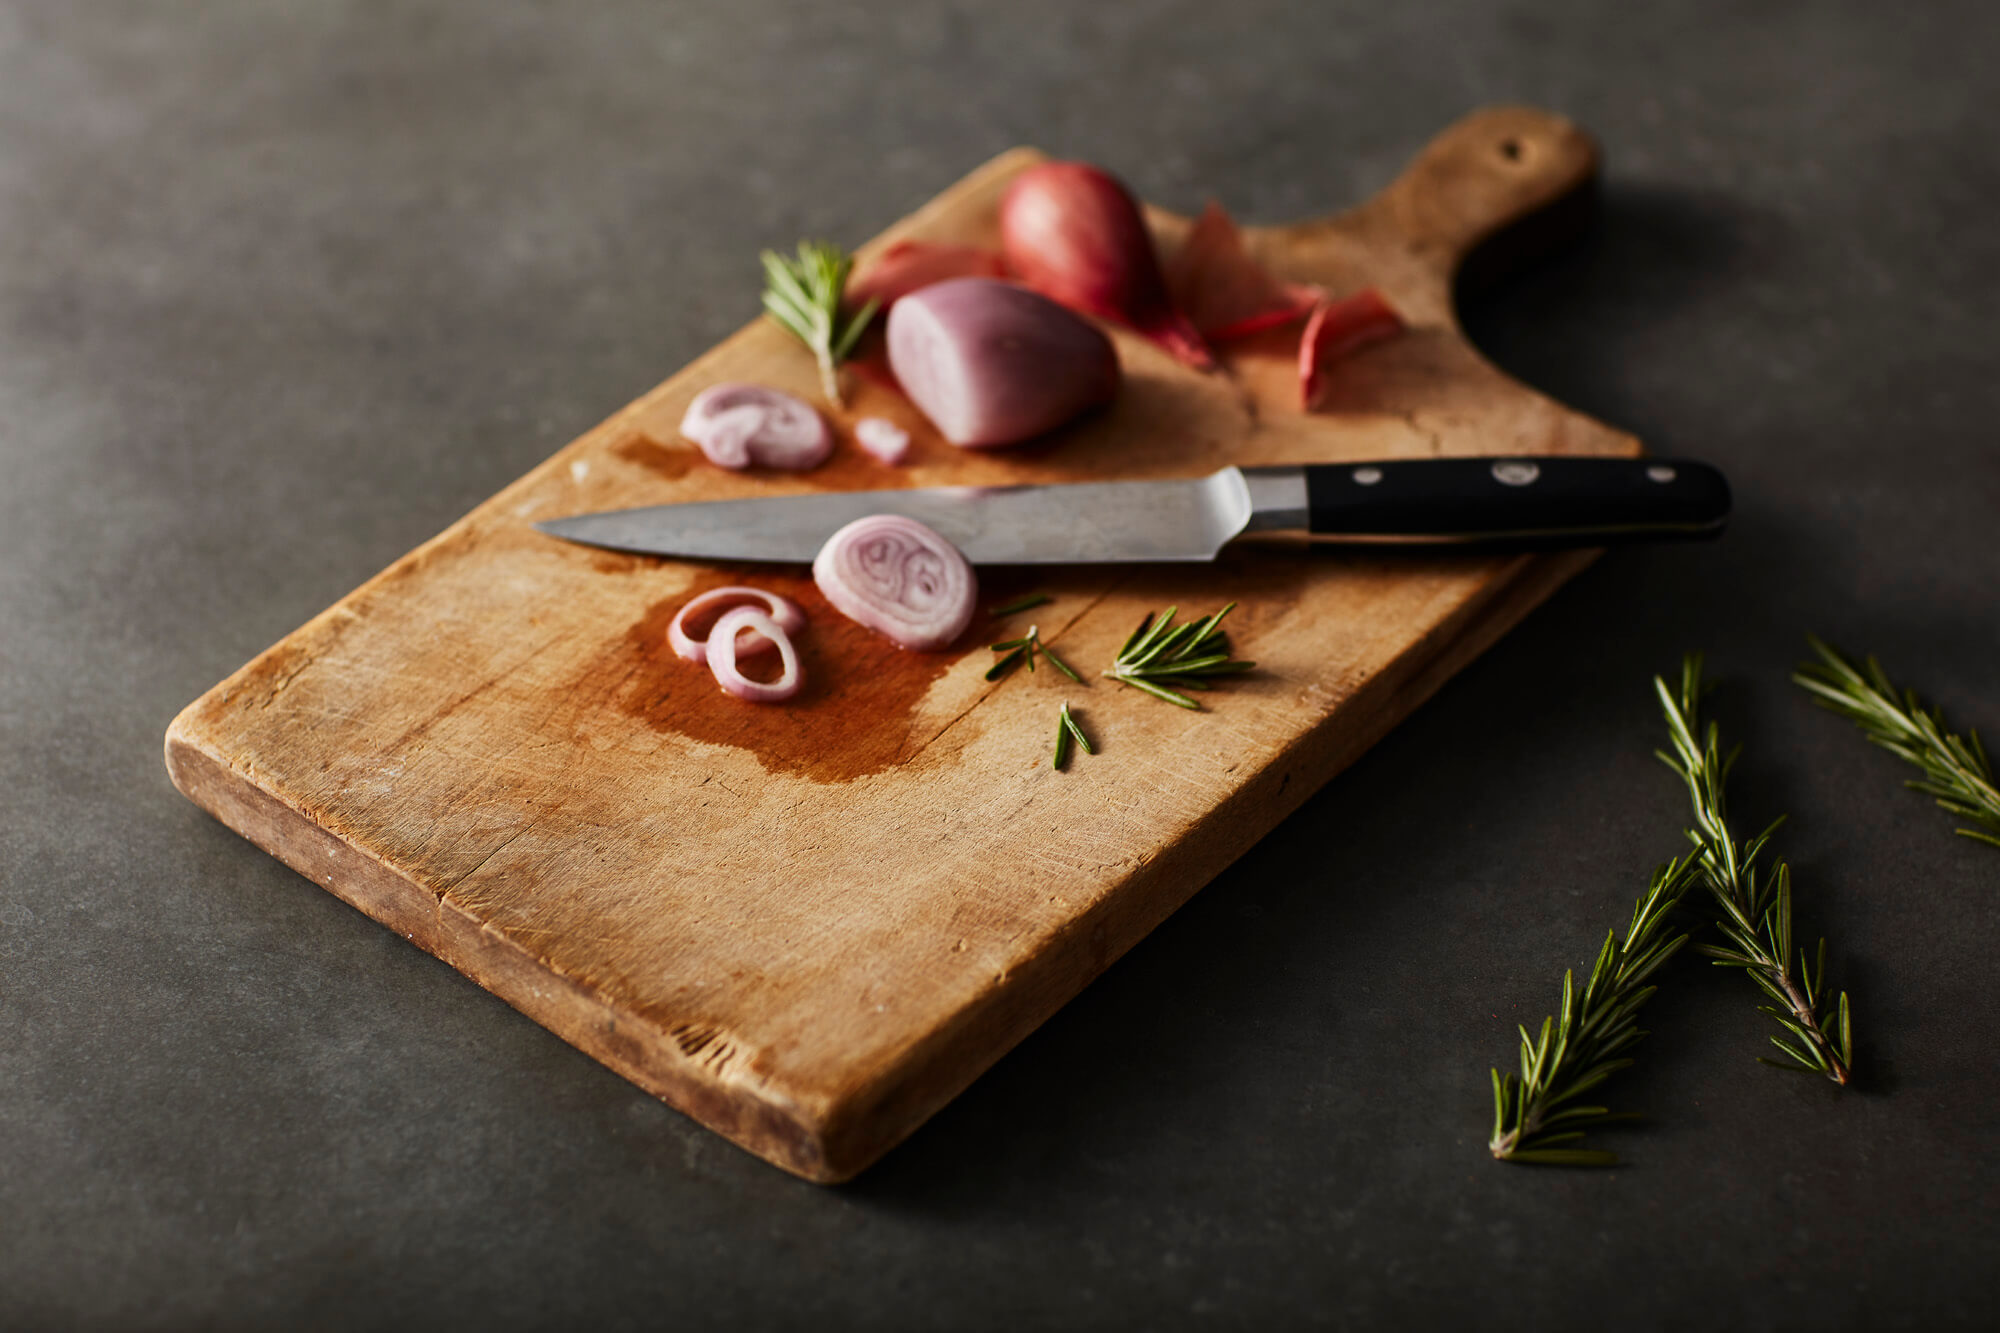 Sliced onions and thyme resting on a wooden cutting board.